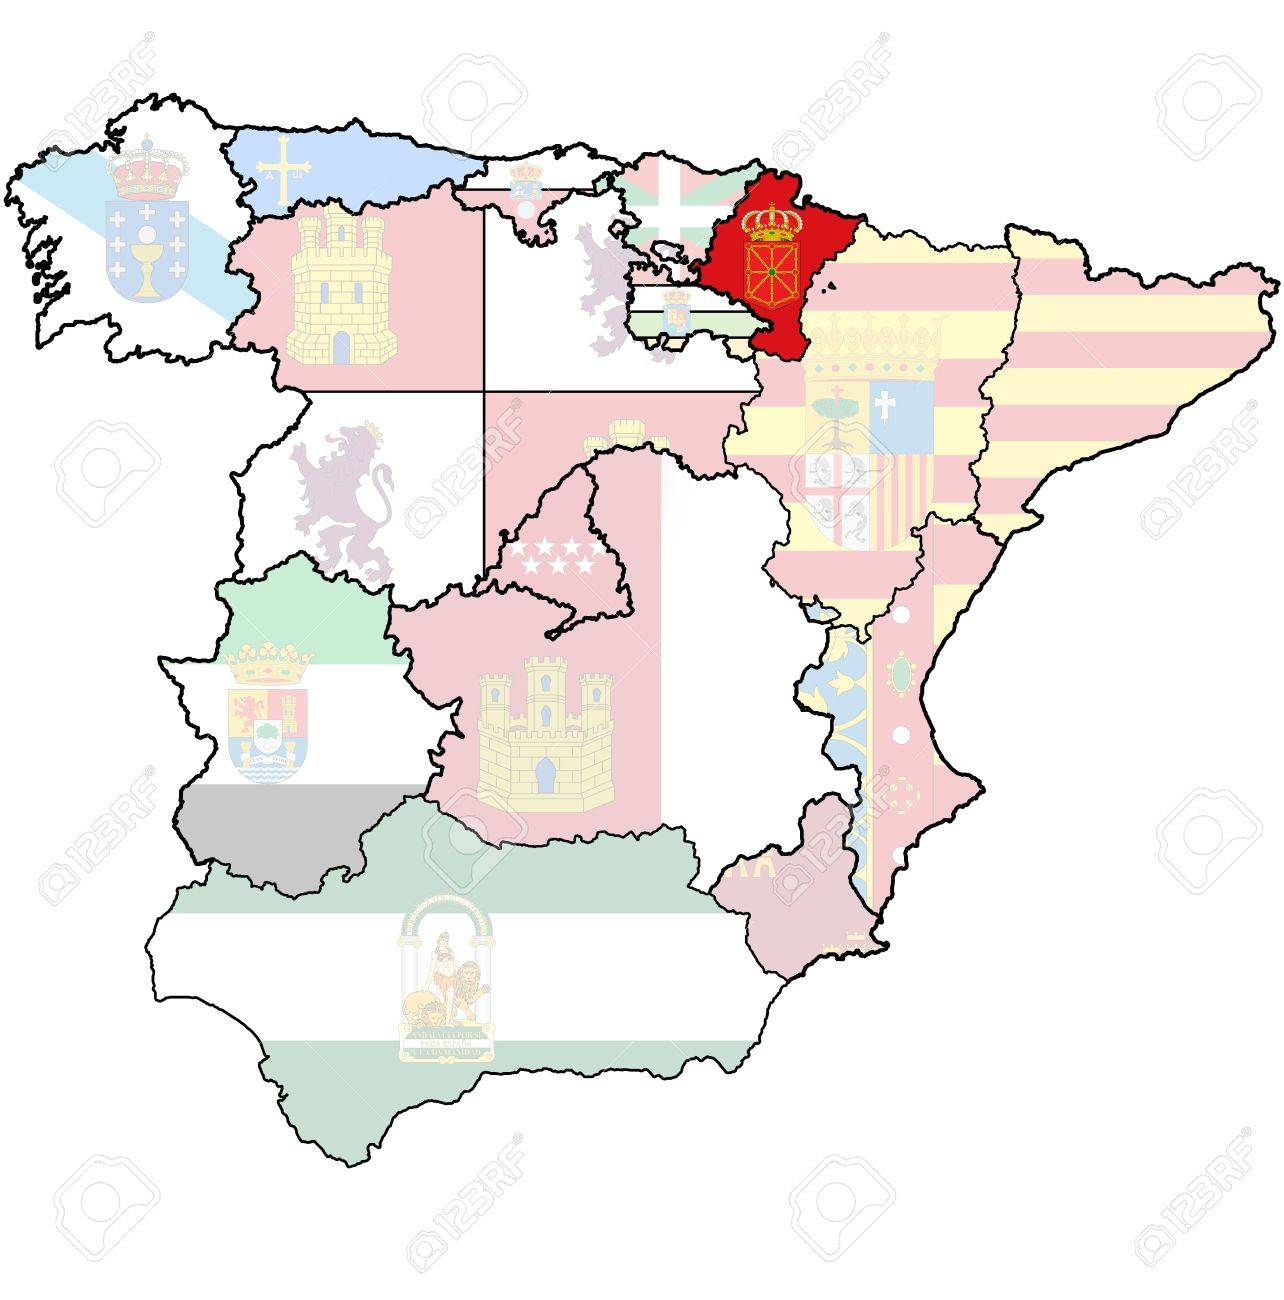 Map Of Spain By Region.Navarre Region On Administration Map Of Regions Of Spain With